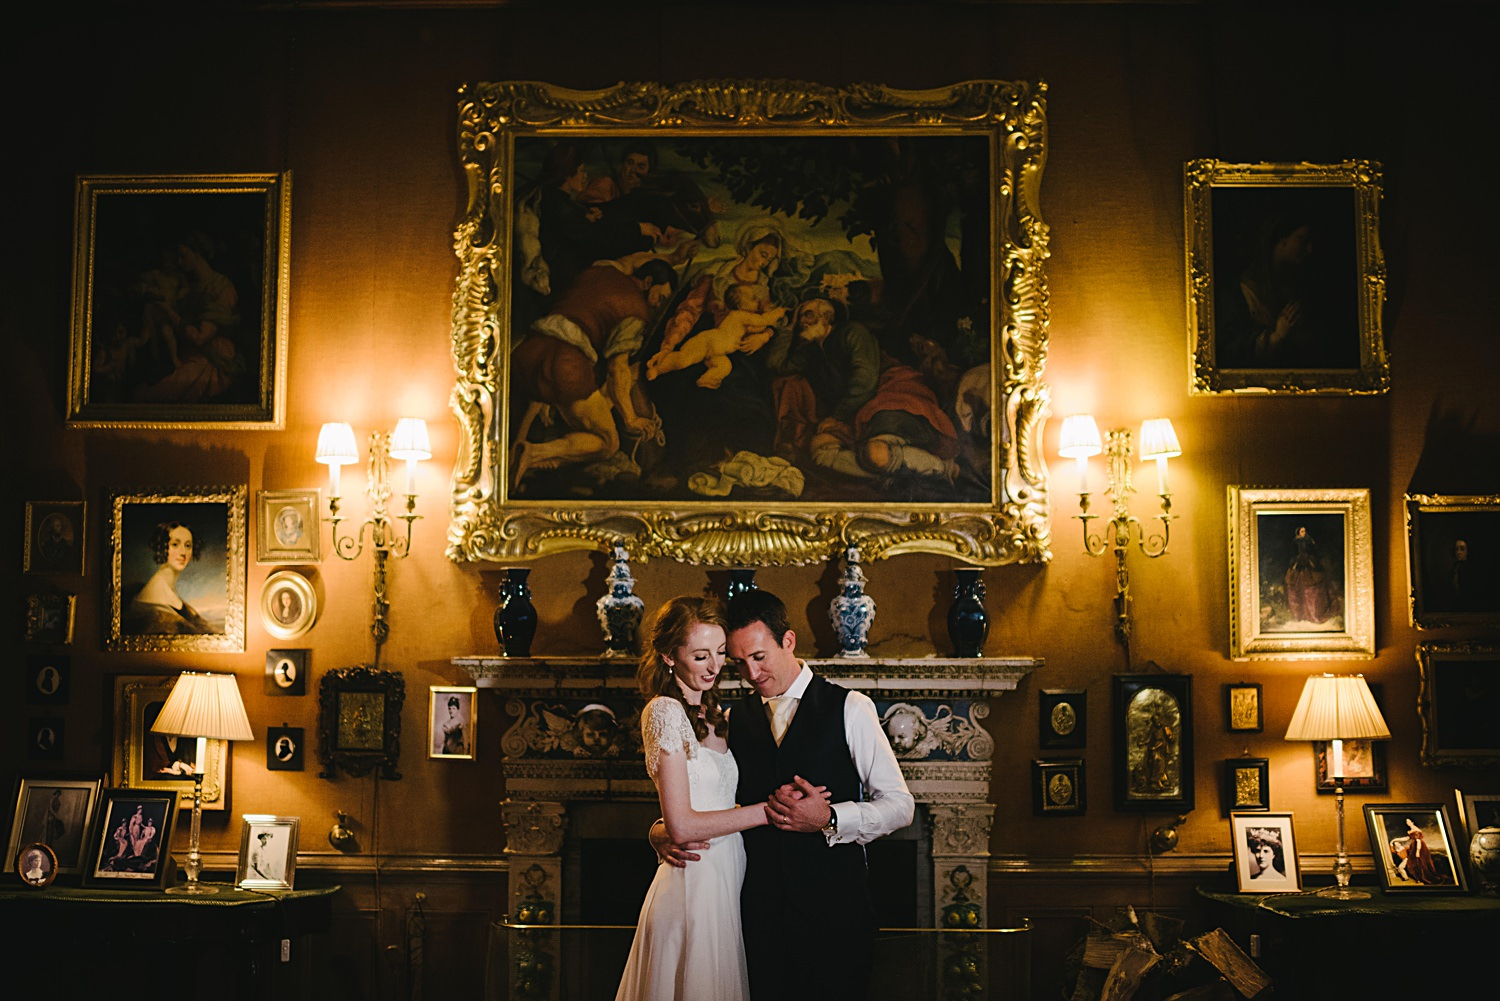 ERIN AND JARLATH'S FULL WEDDING GALLERY  Click on this picture, then simply fill in your own email address and the galley password (bride's maiden name).   Once you have registered your email address you can build your own gallery of favourite images and even order prints!